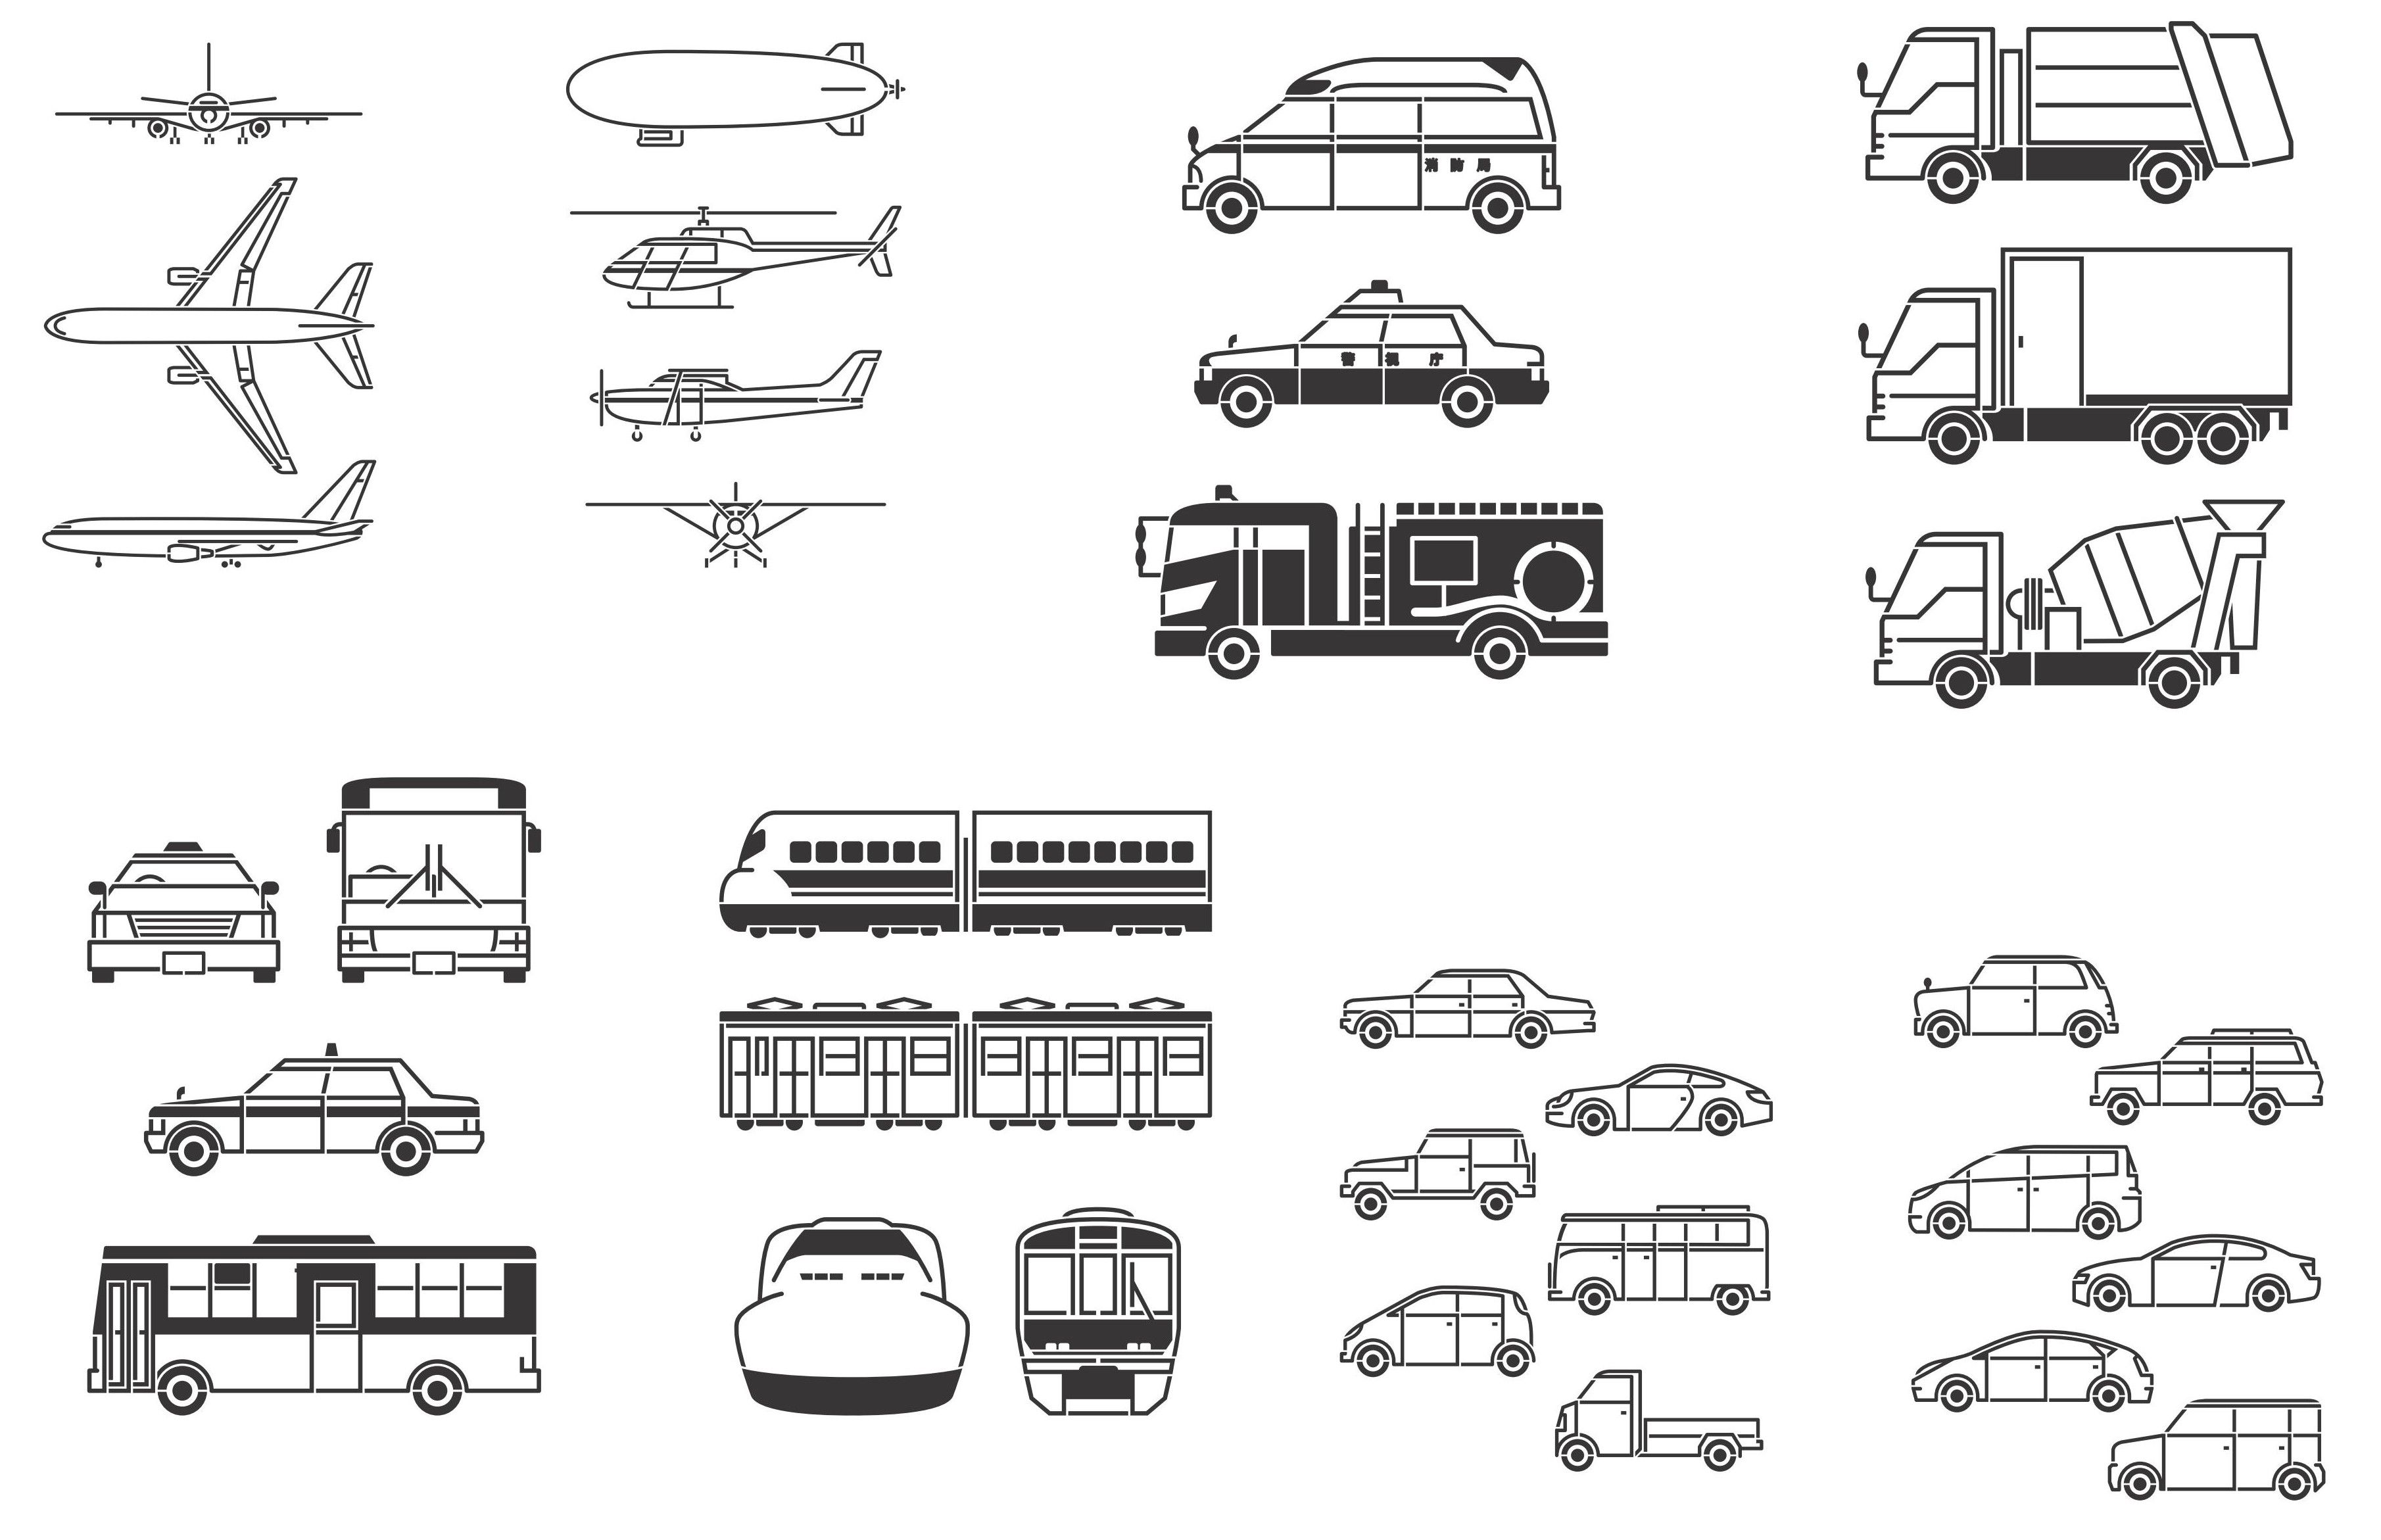 Transport Plane Helicopter Car Truck Train Bus Silhouettes Wiringlight On Loft Lighting Diydoctor Org Uk Diy And Home Improvement Vector Eps Free Download Logo Icons Brand Emblems